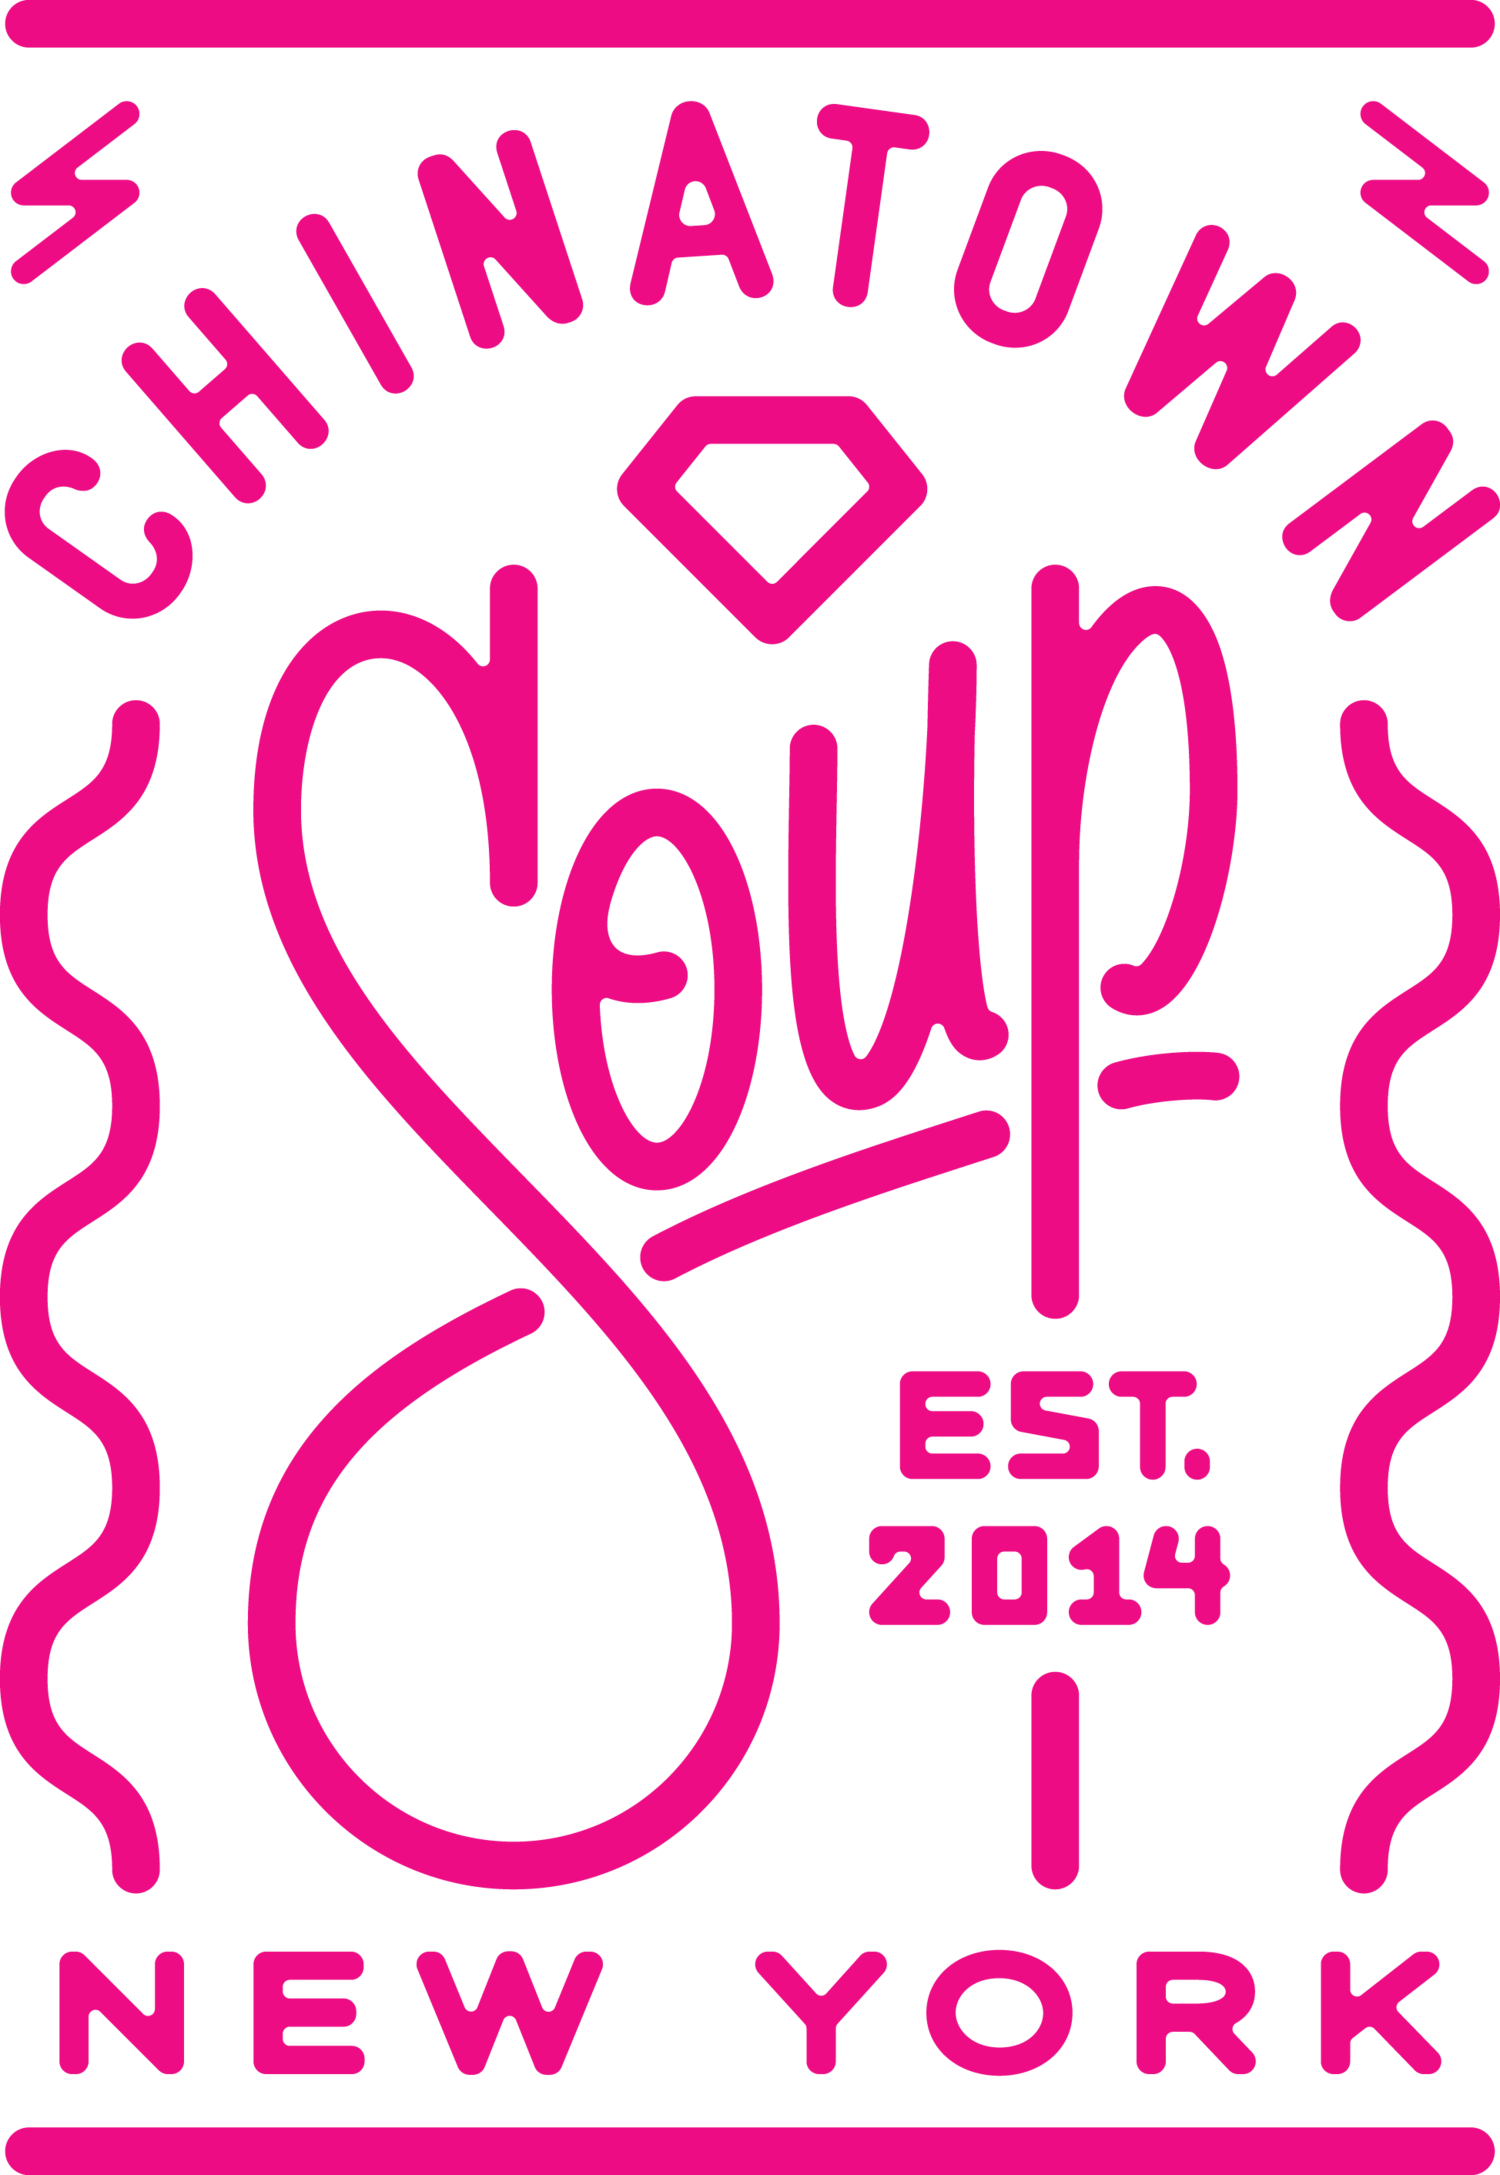 Chinatown Soup